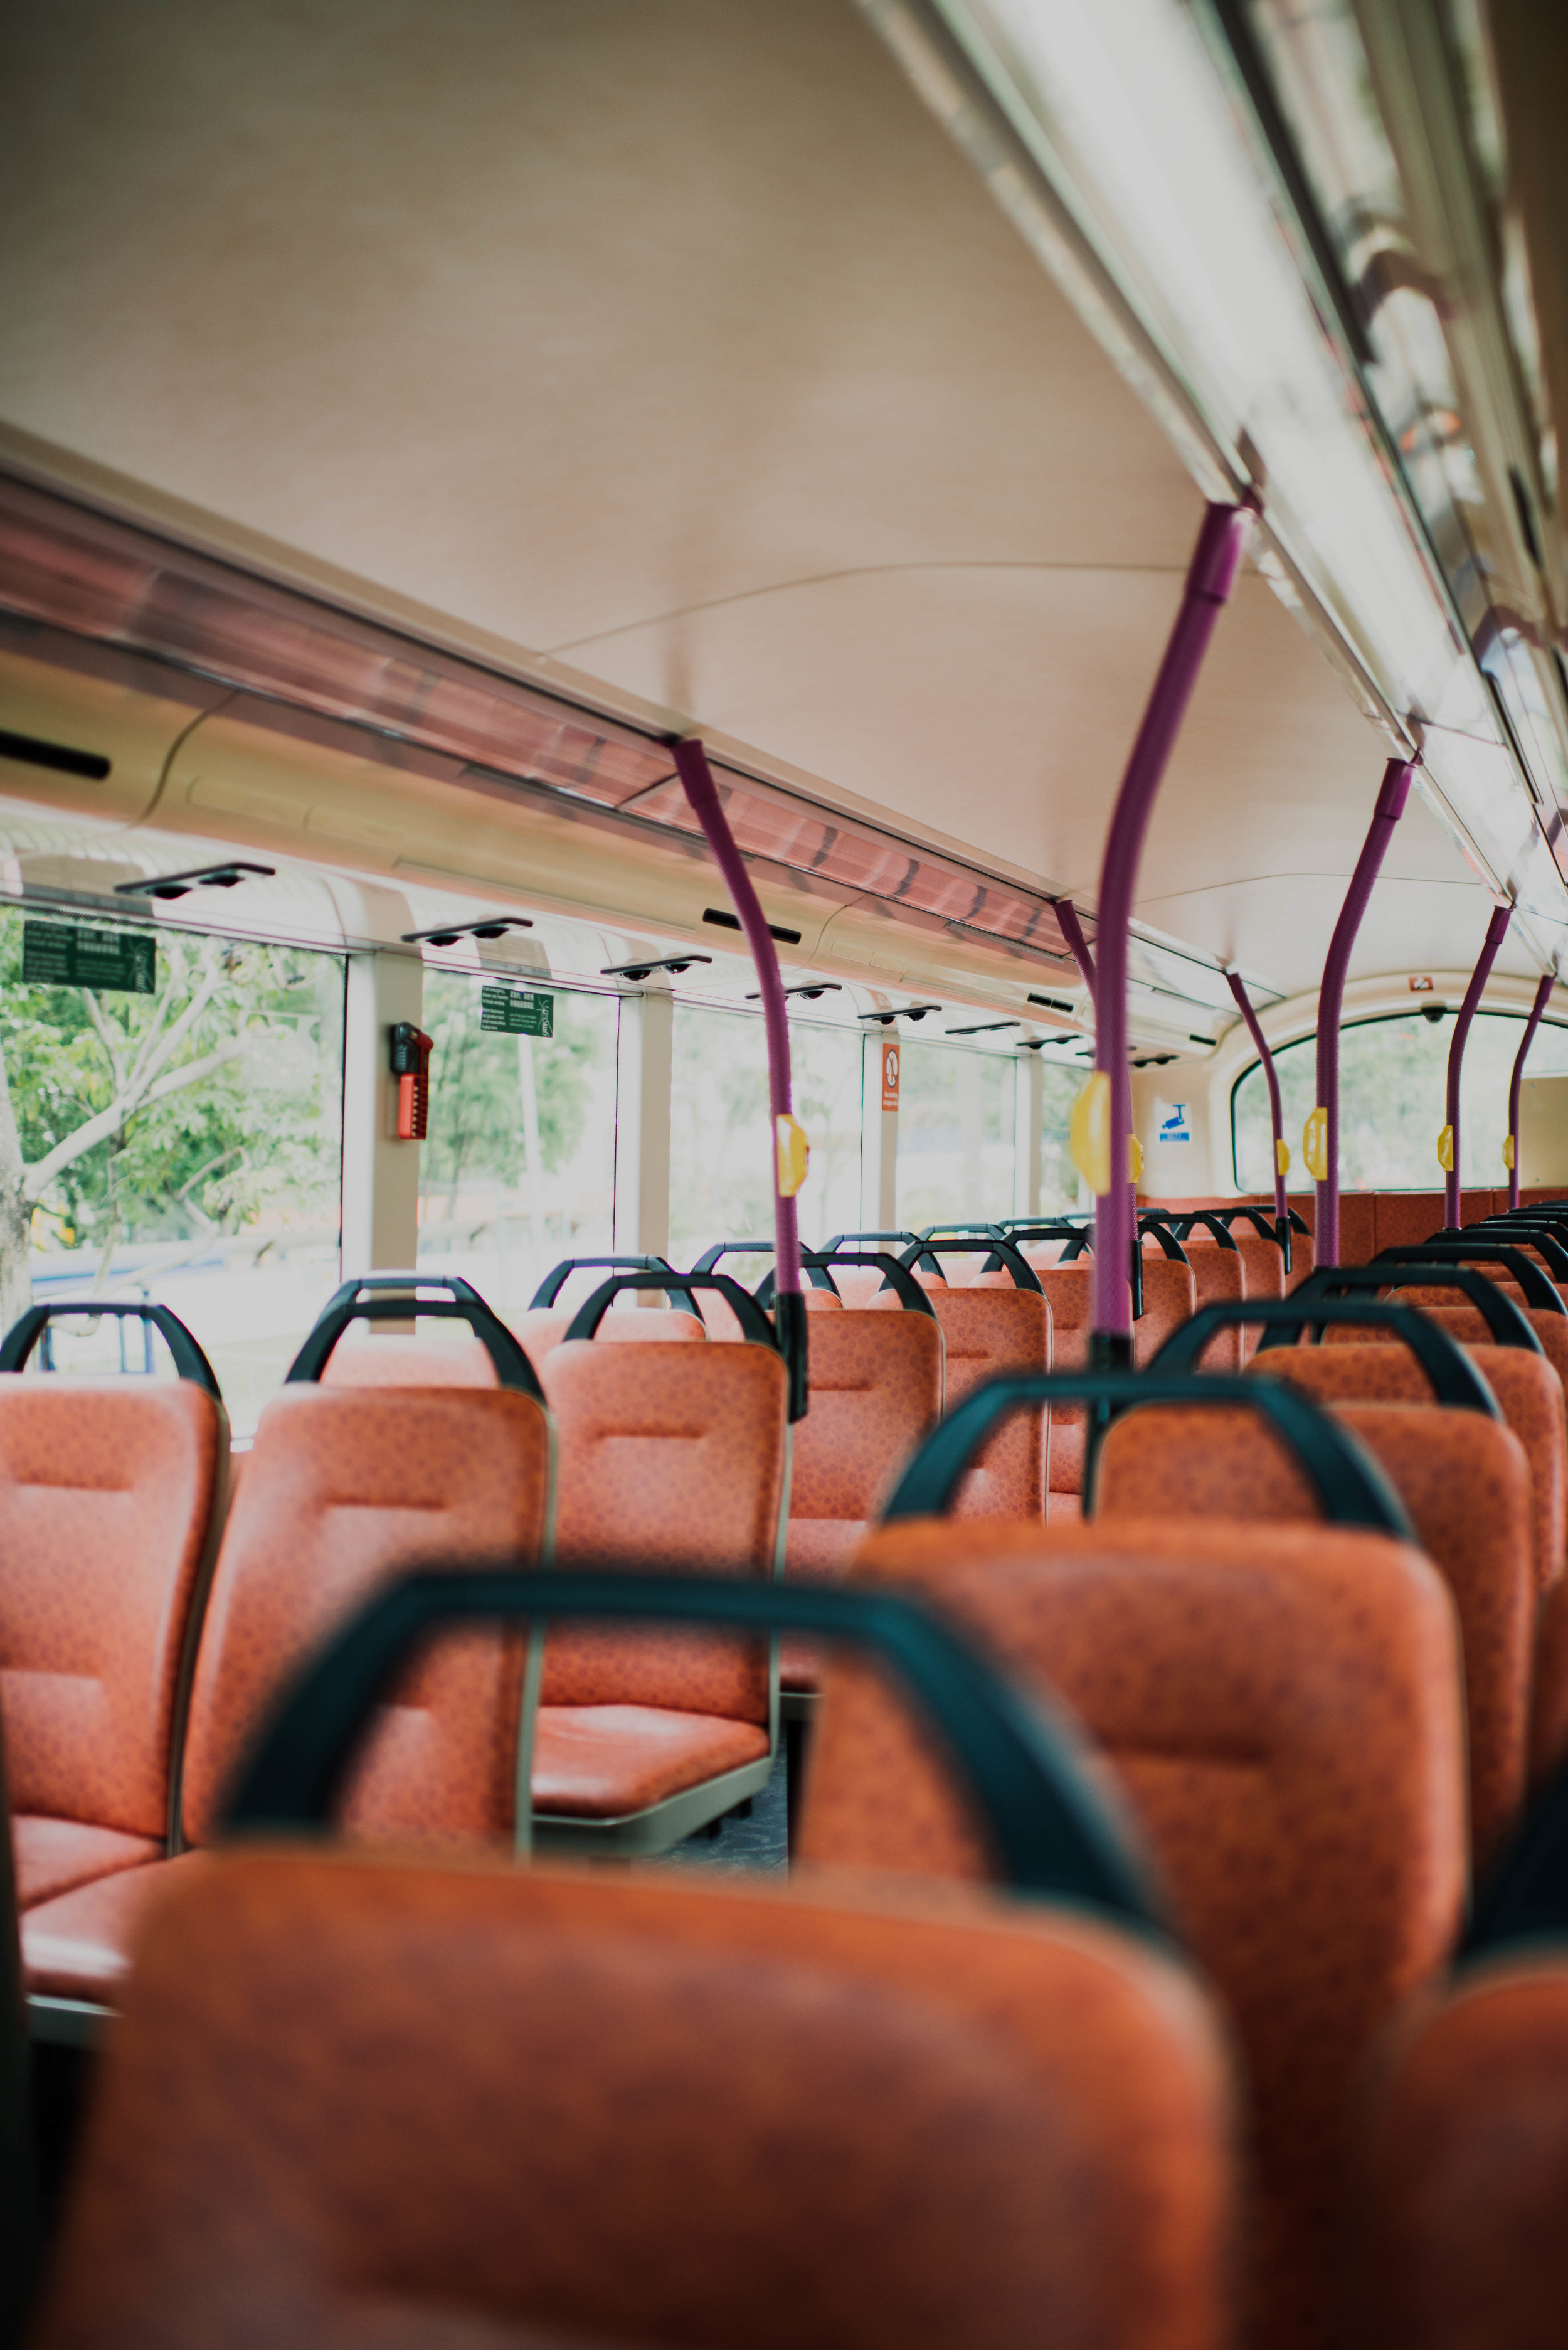 £56.9M FUNDING BOOST FOR METROBUS IN WEST OF ENGLAND -